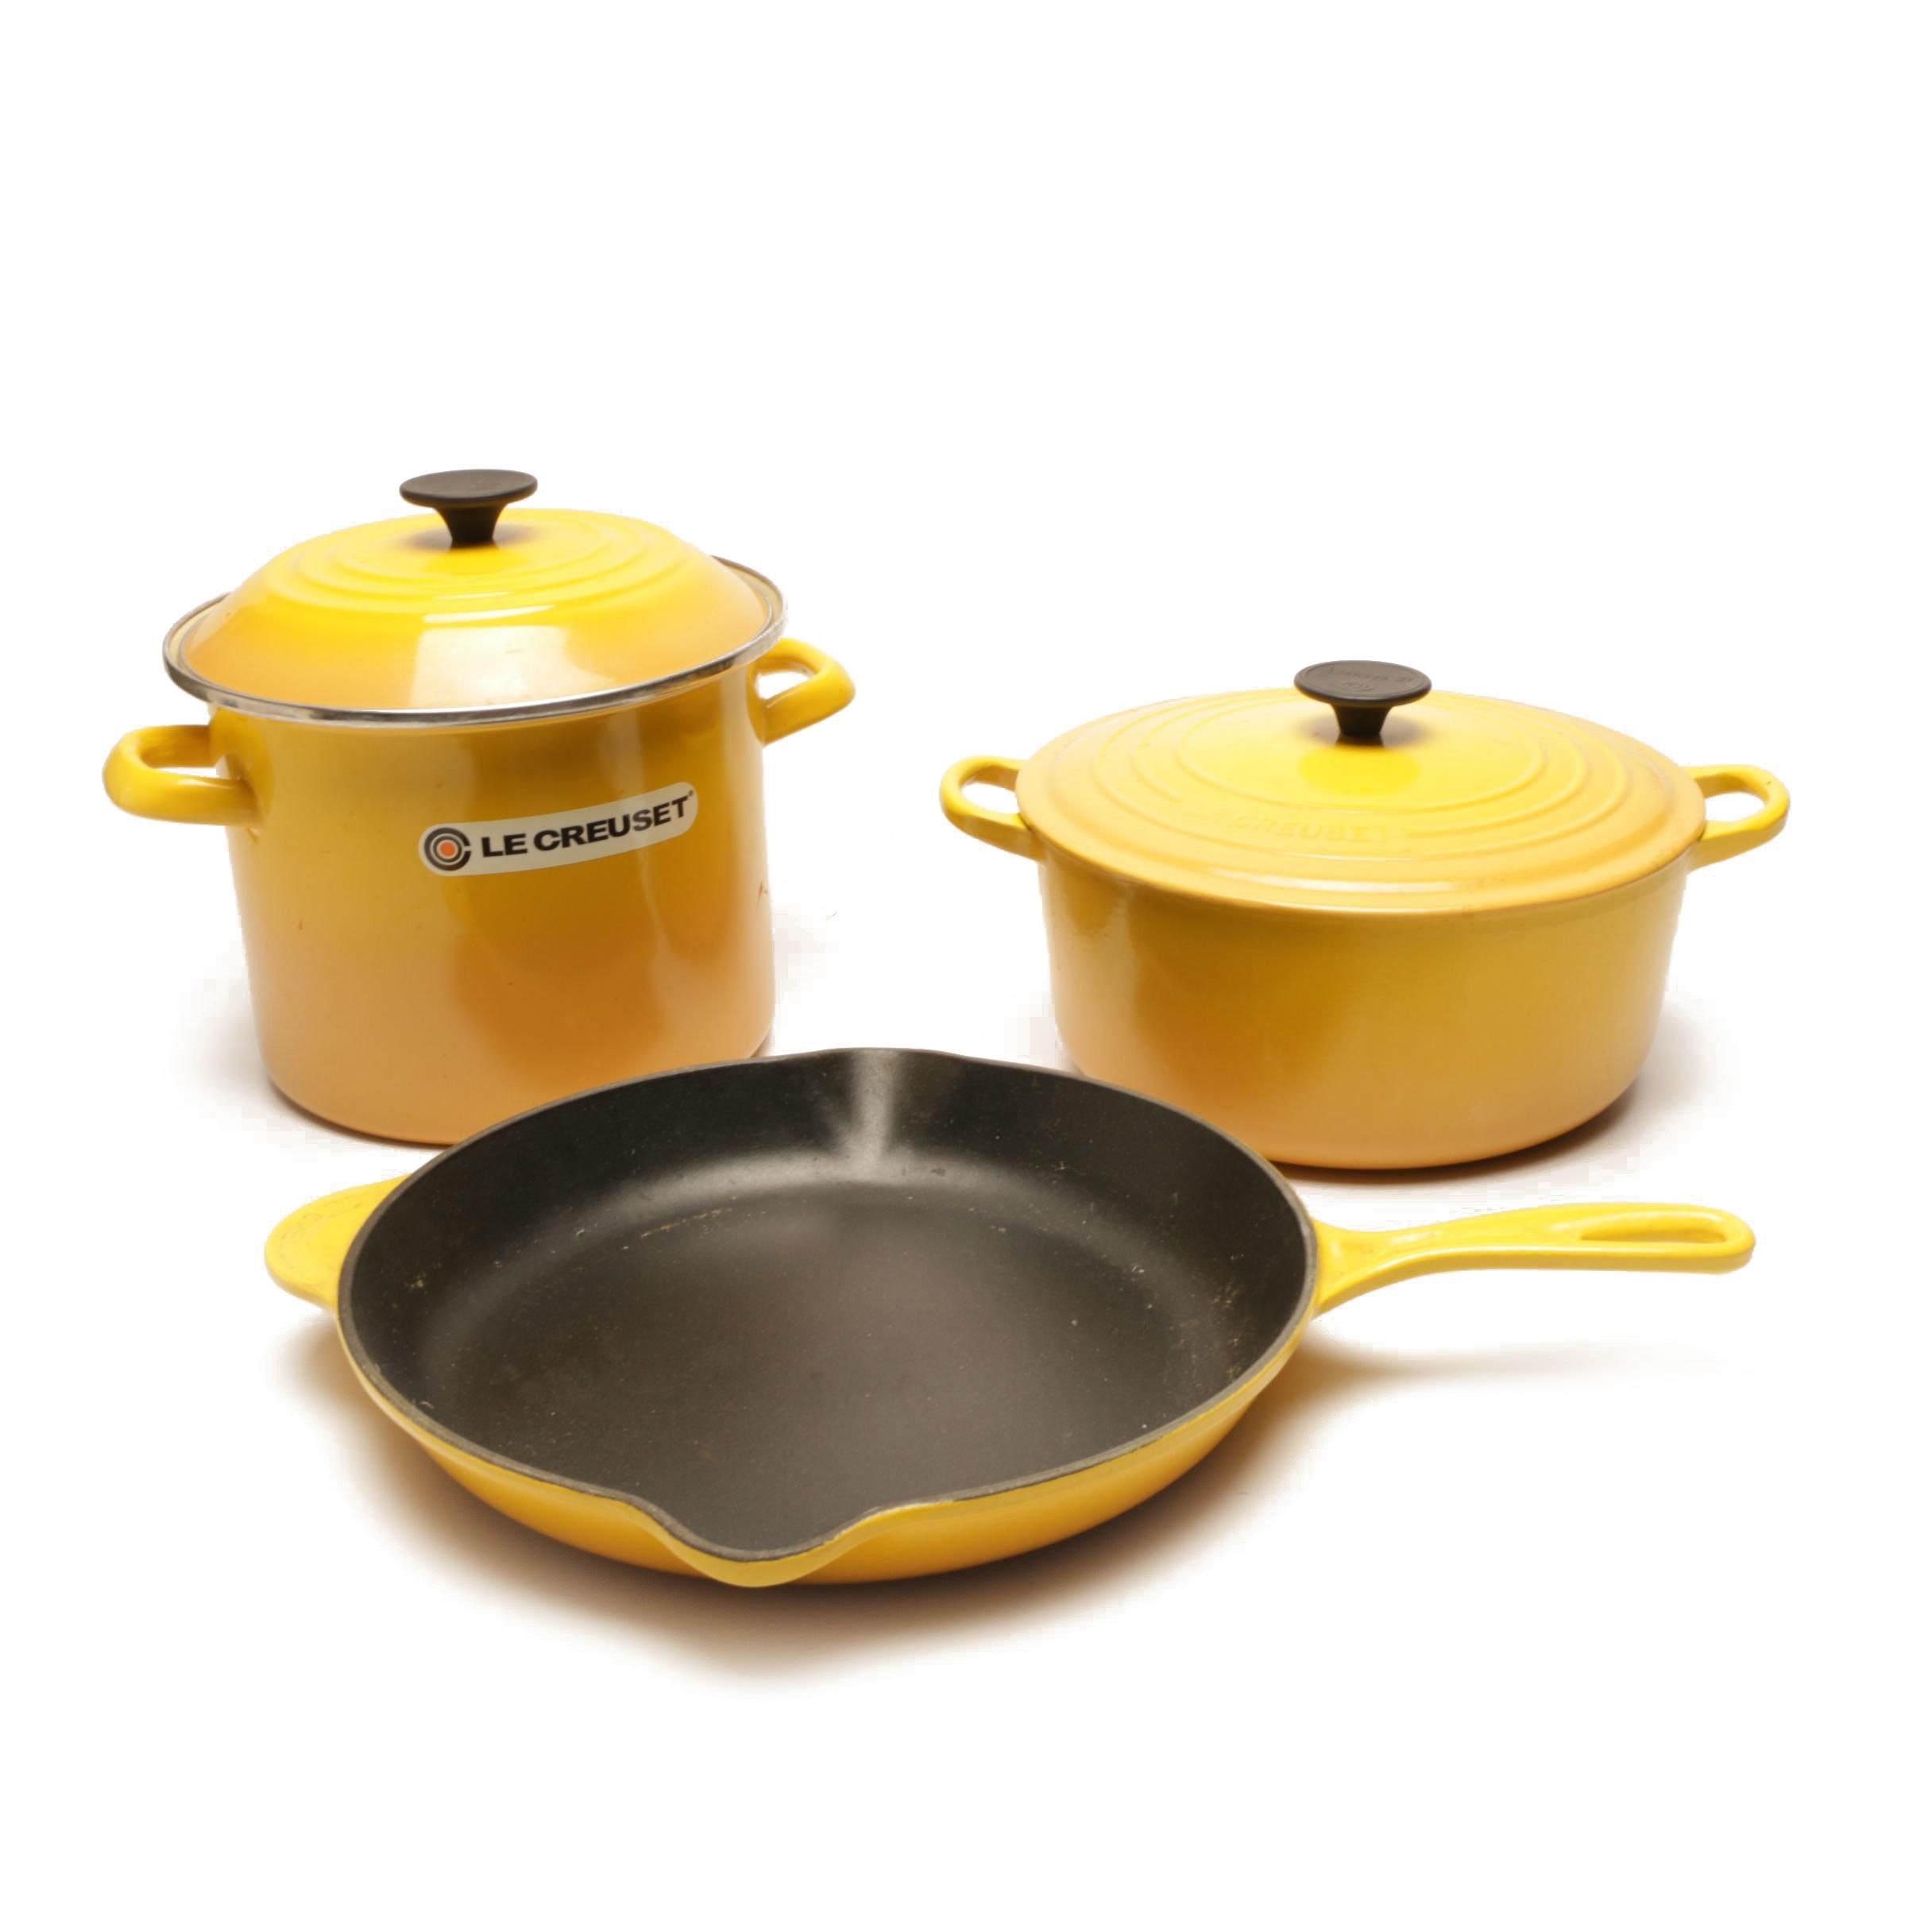 Le Creuset Yellow Enameled Cast Iron Stock Pot, Dutch Oven and Fry Pan